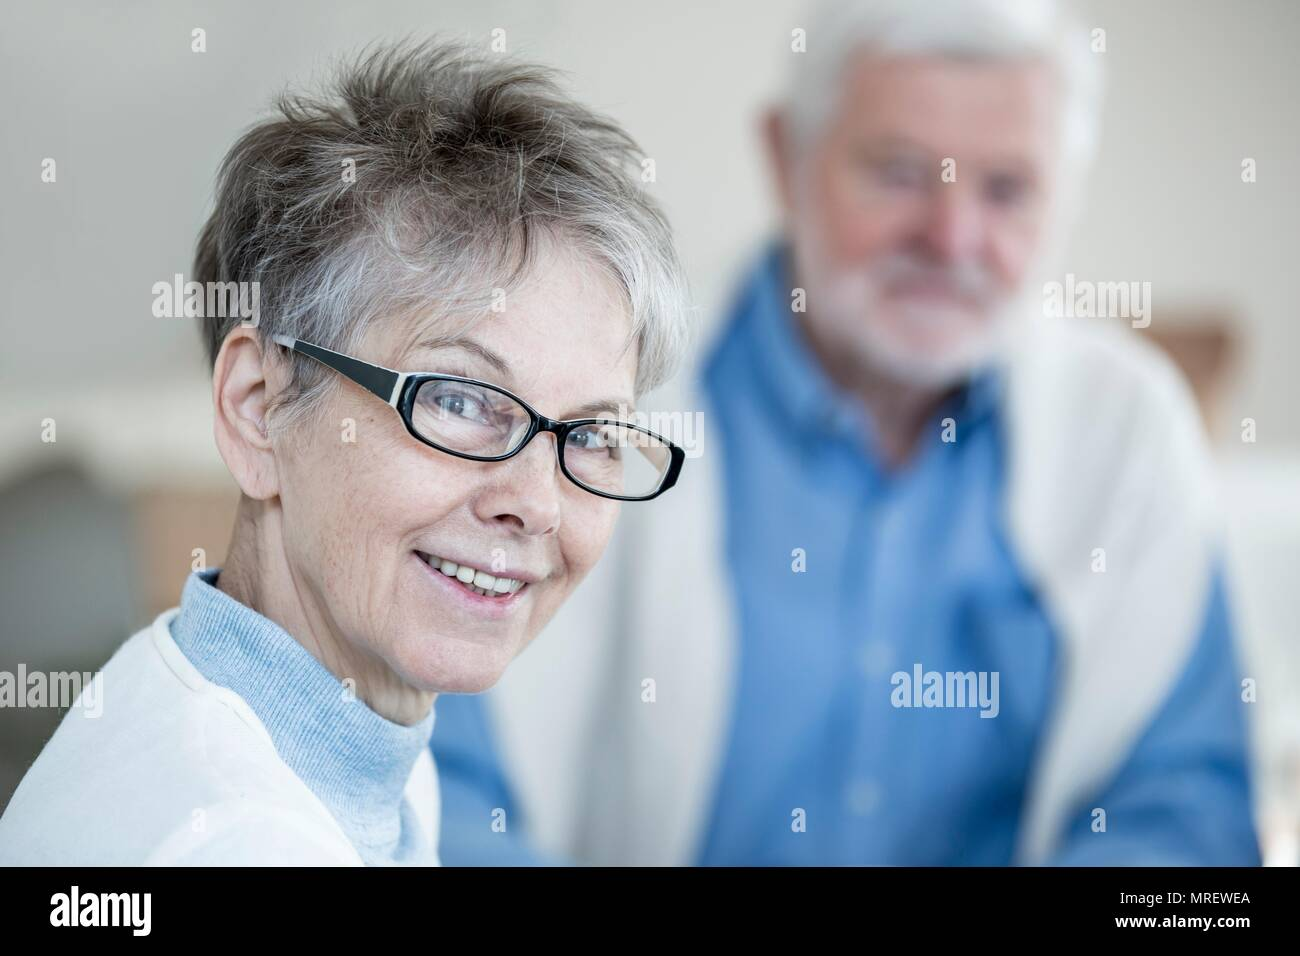 Senior woman in glasses smiling towards camera, portrait. - Stock Image